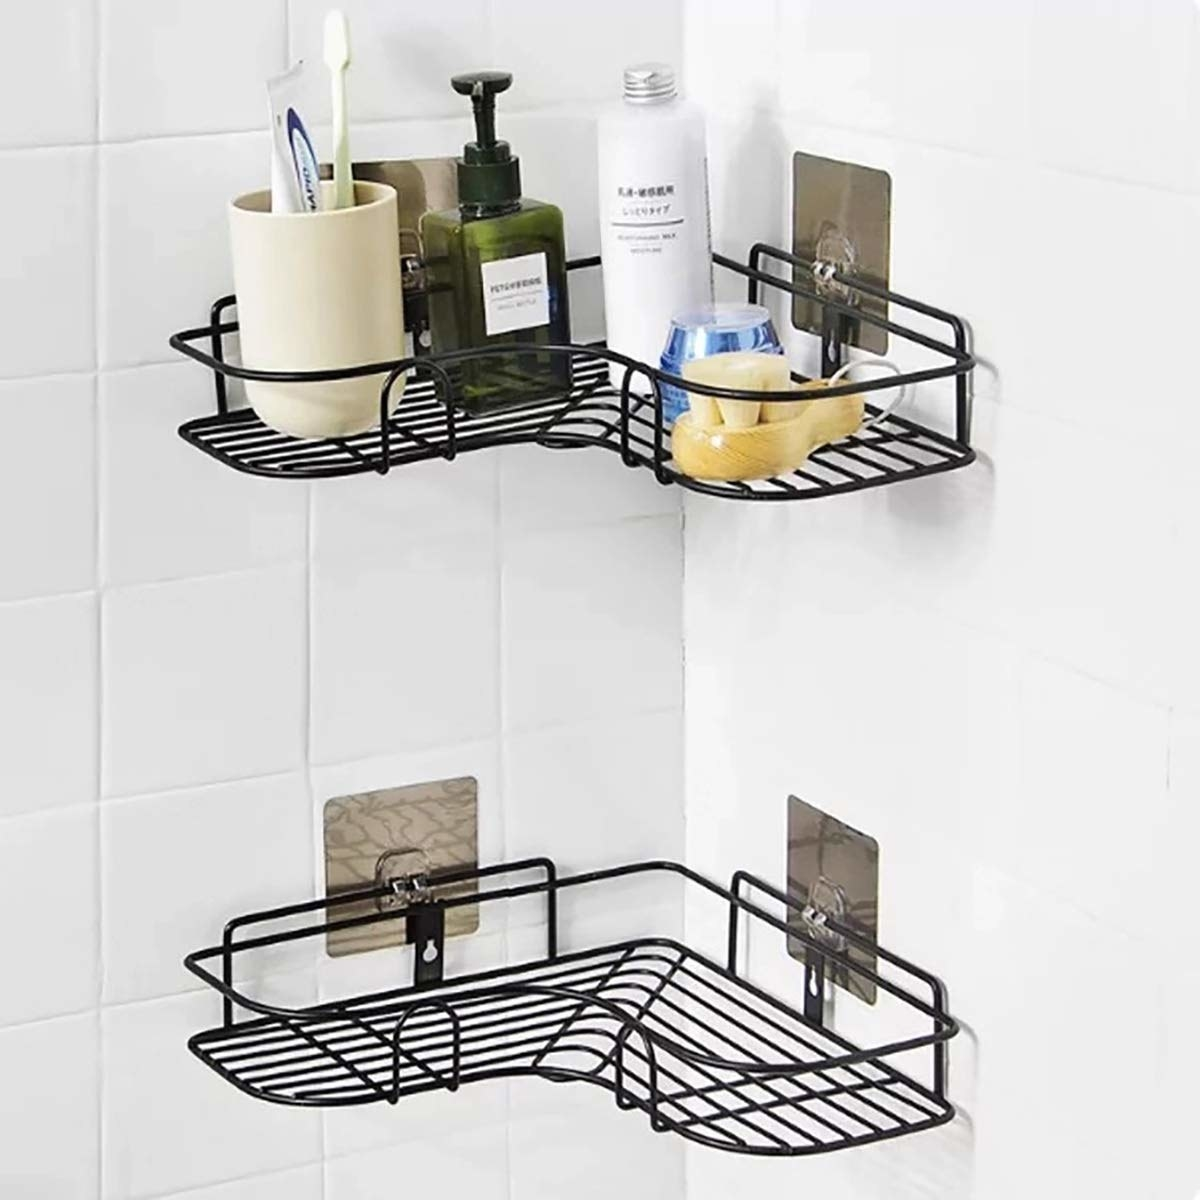 A shower caddy with shower products on it